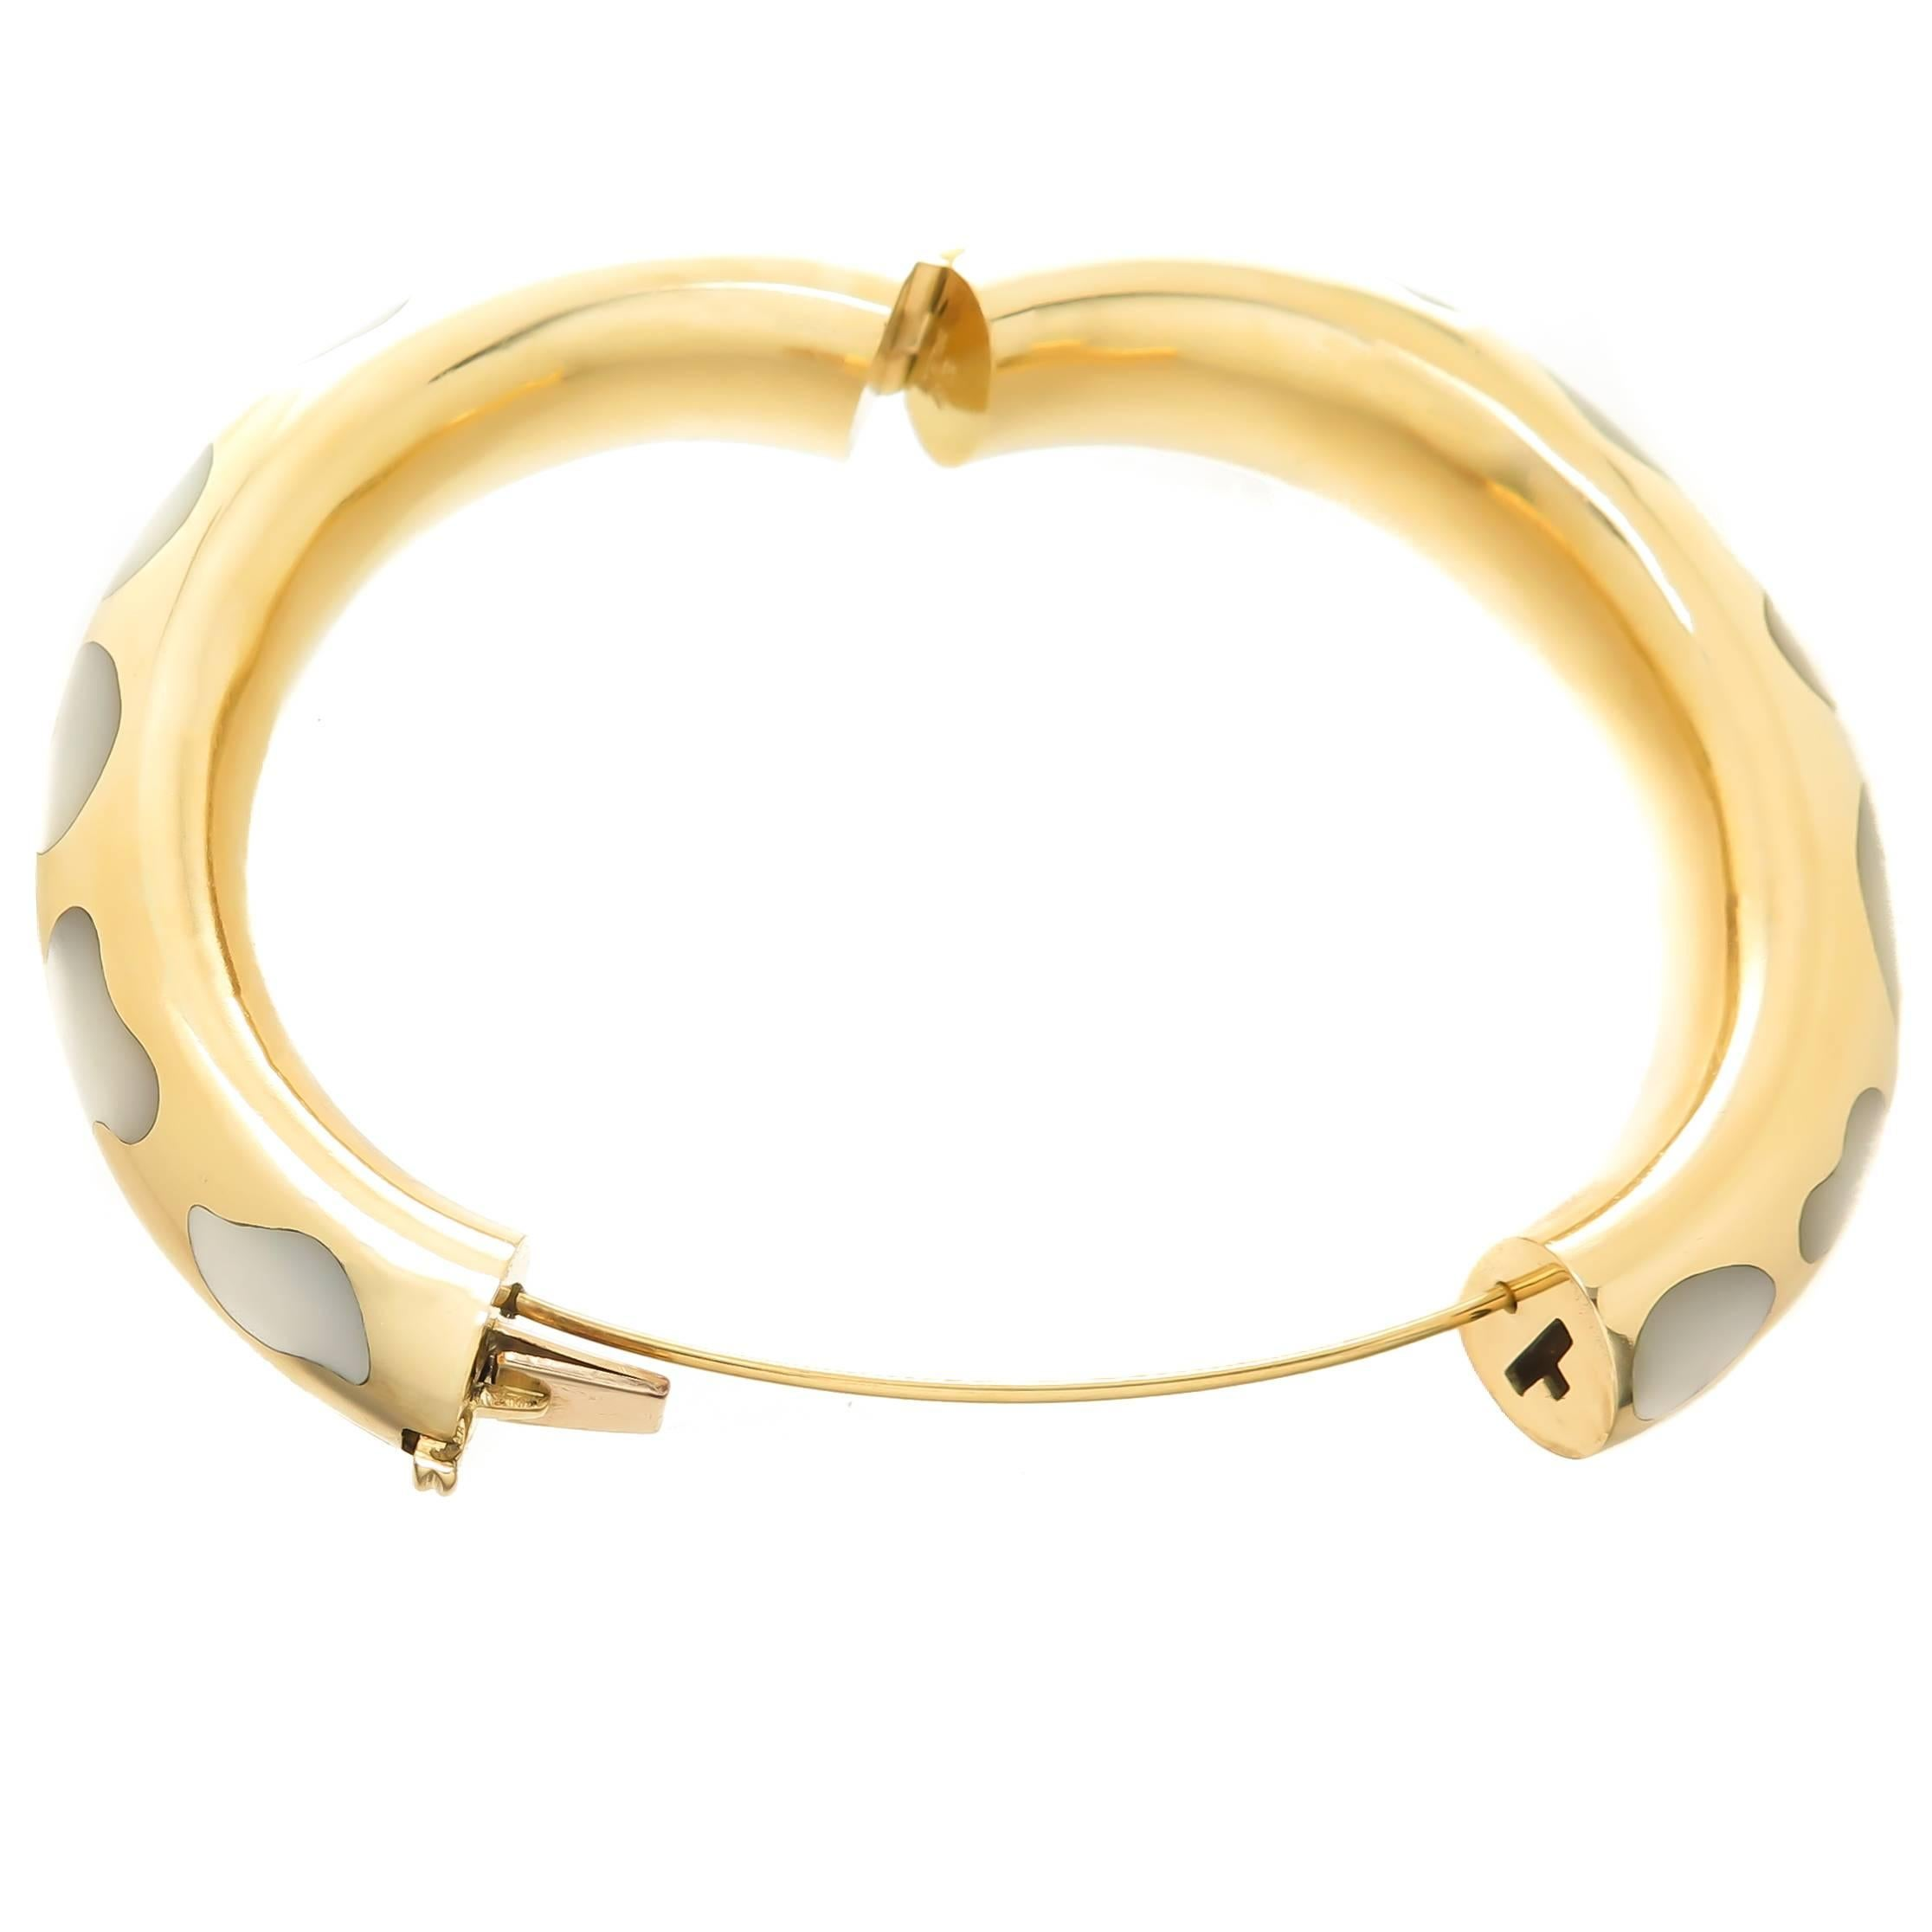 john inch johnsbrana brushed tapered gold anticlastic bangle aluminum bangles s products bracelet brana